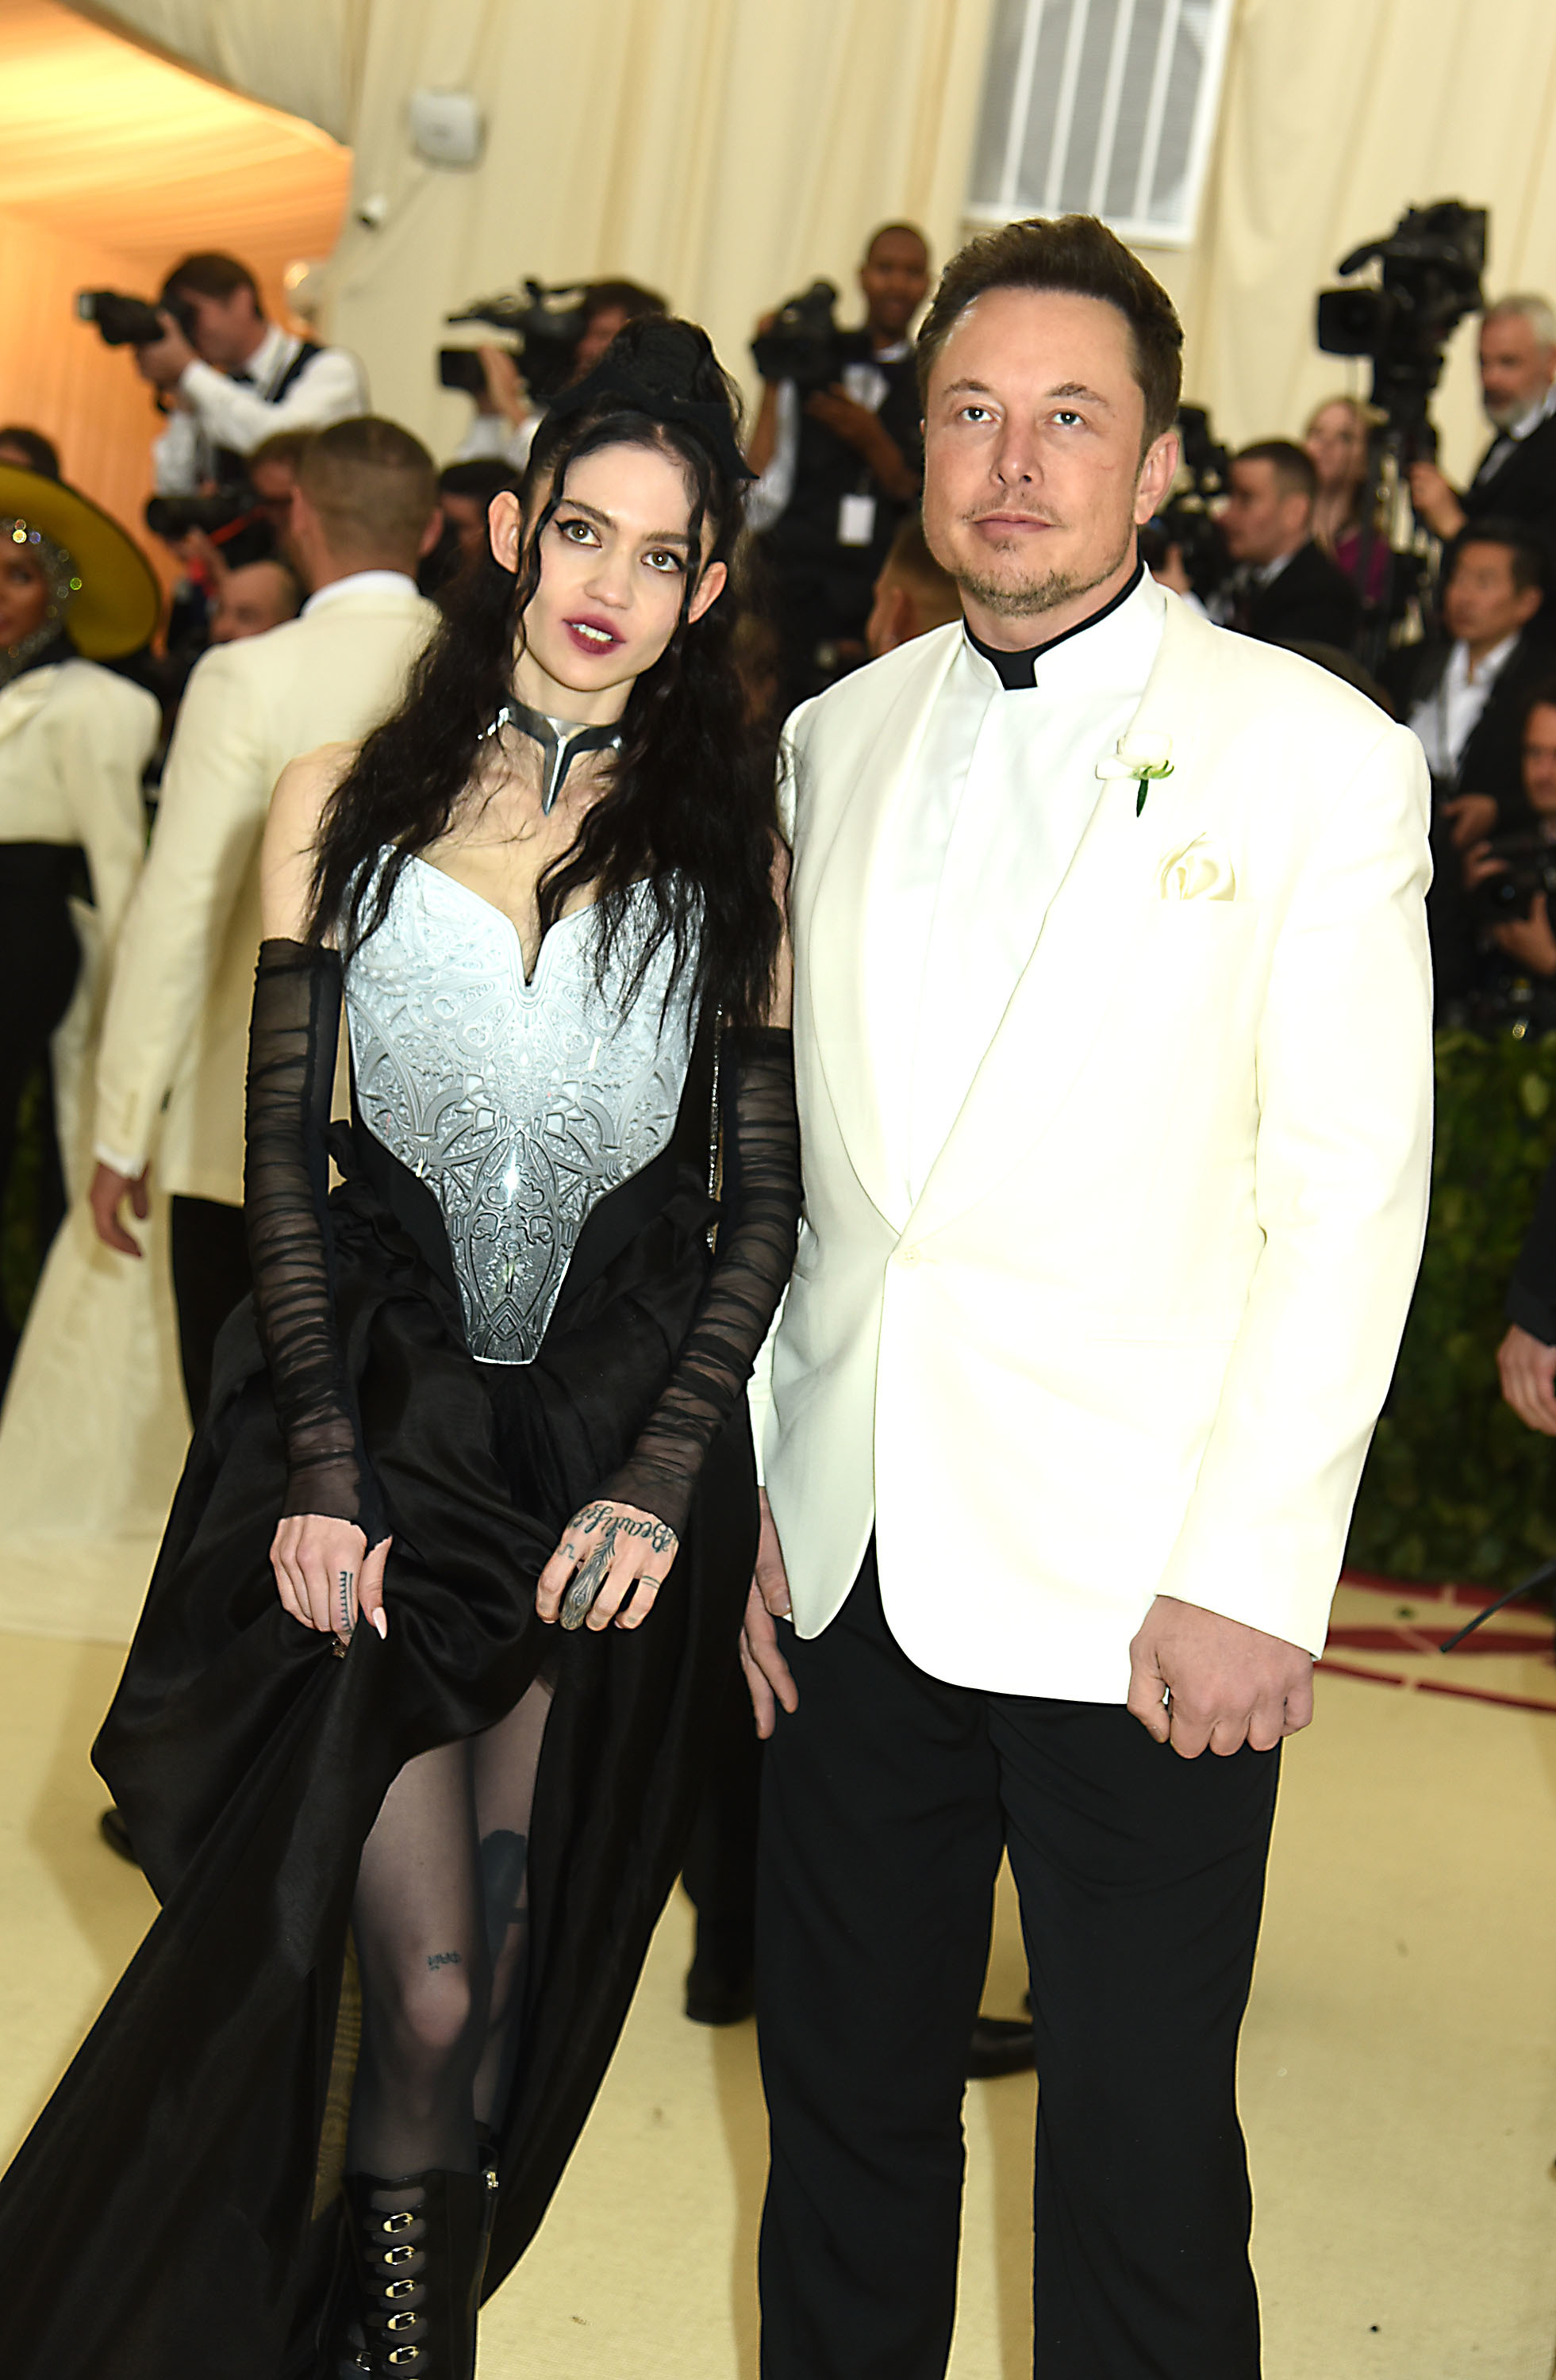 Elon Musk and Claire Elise Boucher aka Grimes